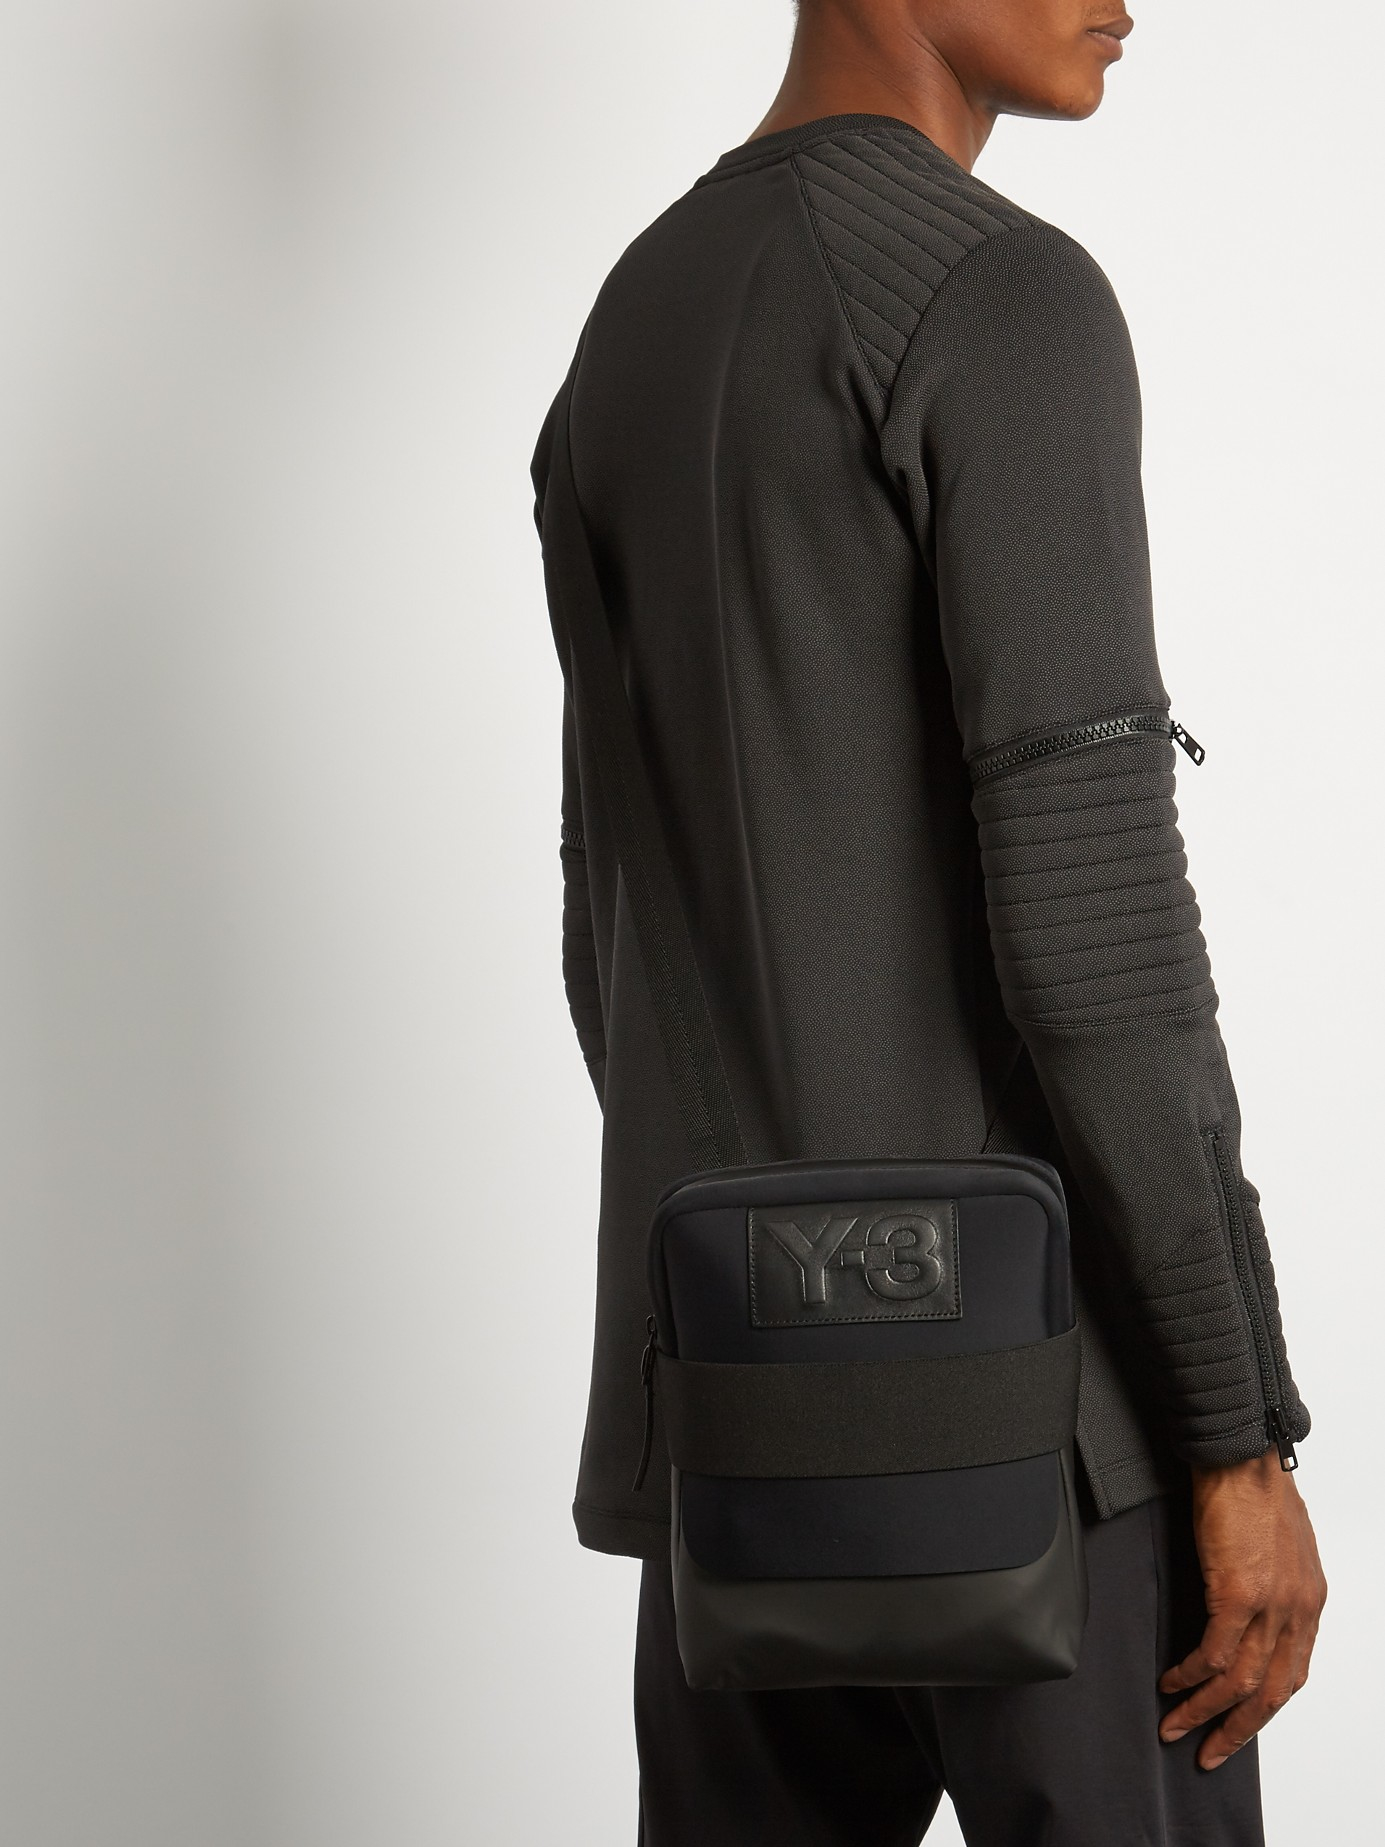 0810ea9dc411 Lyst - Y-3 Qasa Report Messenger Bag in Black for Men